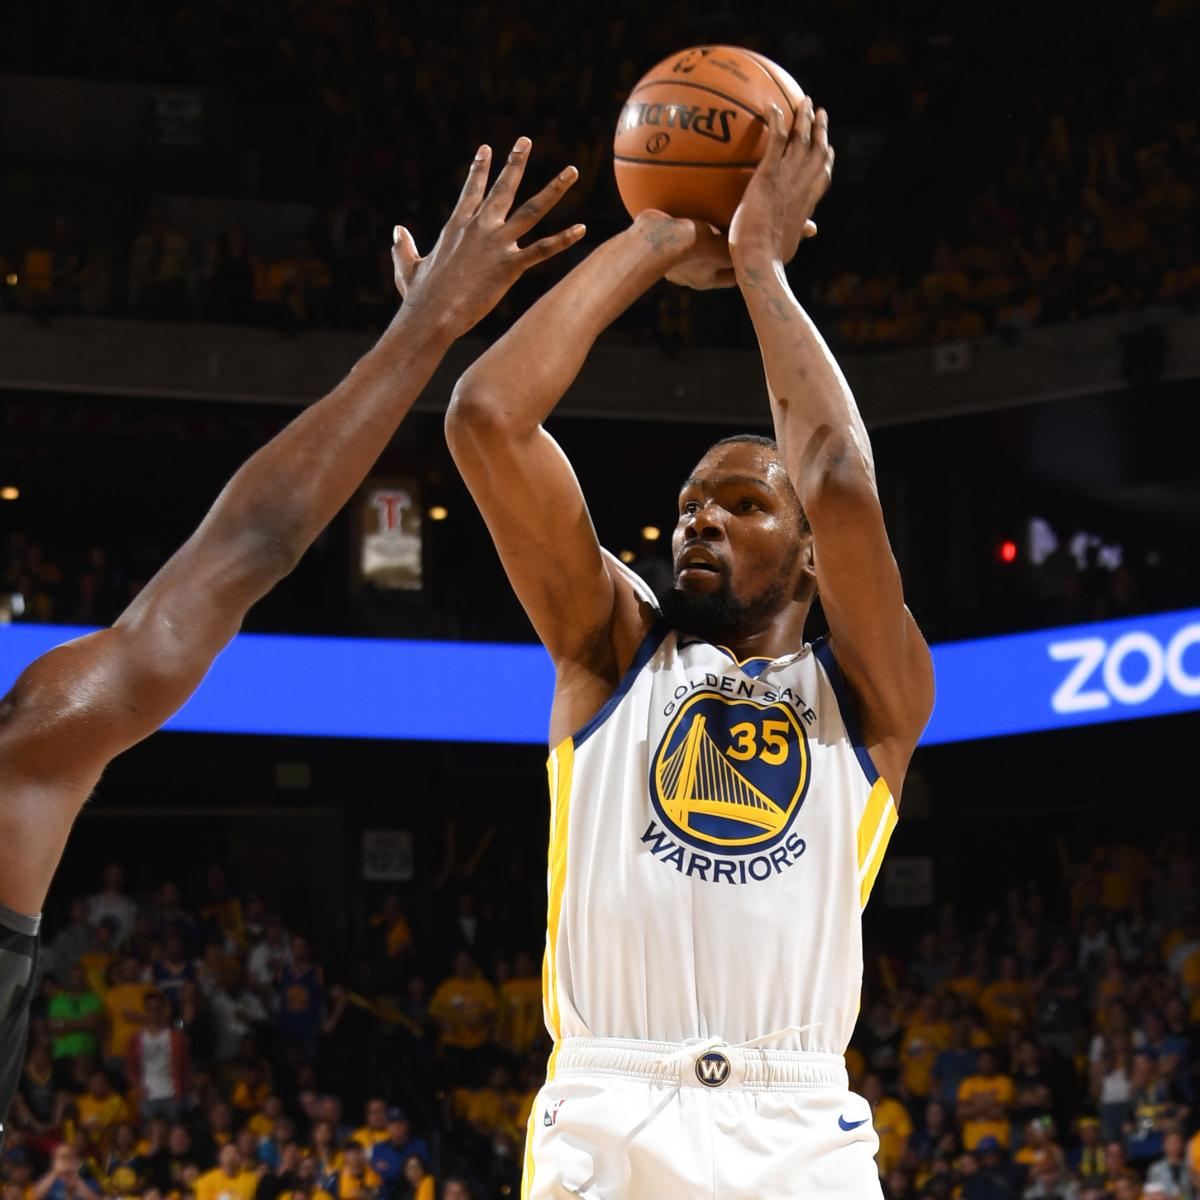 Rockets Vs Warriors Harden: Kevin Durant's 35 Carry Stephen Curry, Warriors To Win Vs